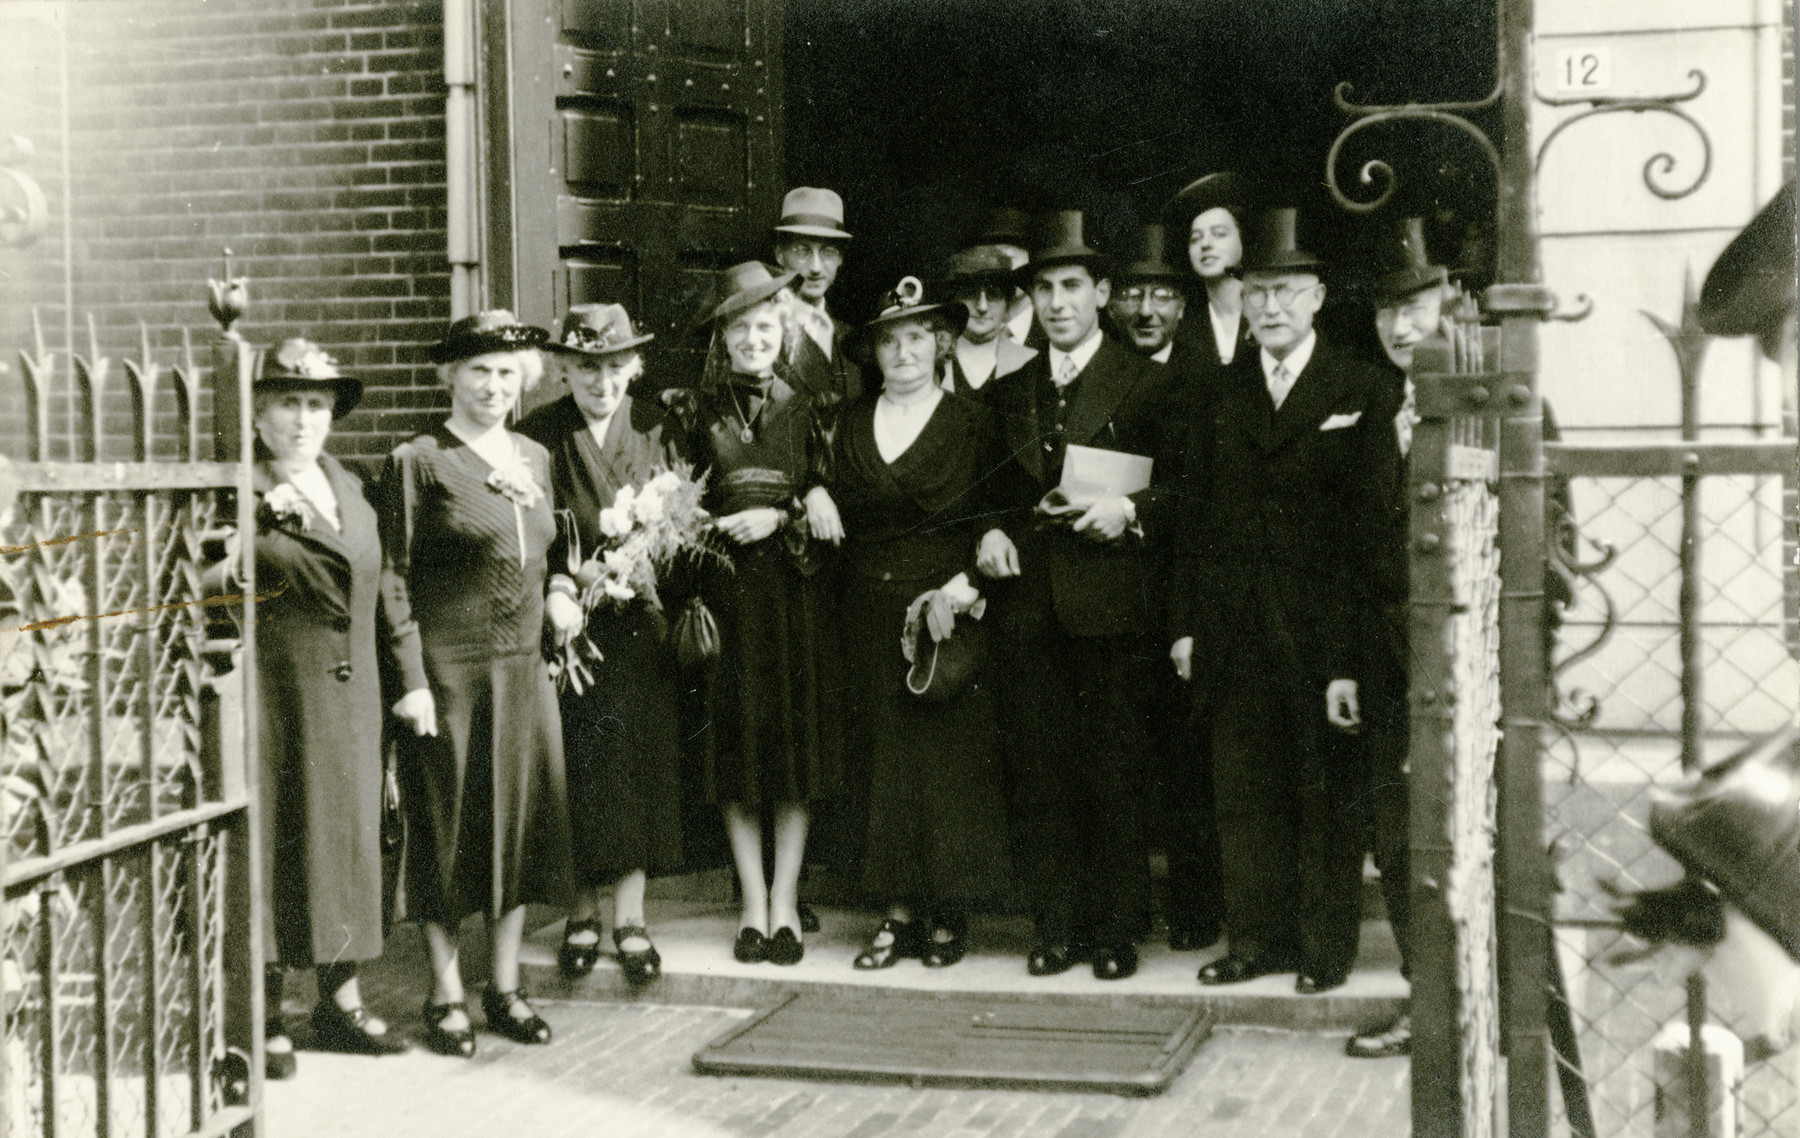 A Dutch Jewish wedding party gathers for a photo.  Pictured left to right are [unknown]; Rebecca (Reindorp) Herschel (the donor's grandmother); [unknown]; Bella (Bilha) Elizabeth Herschel (the donor's father's sister); Nico Herschel; the groom's mother; Aharon Davidson; [unknown]; [unknown]; Ammy Herschel; Herman Herschel (the donor's grandfather); and [unknown].  Pictured are Bilha (Bella) Elizabeth Herschel (the donor's father's sister, fourth from left); Nico and Ammy Herschel (the donor's parents, fifth from left and third from right); the donor's grandmother, Rebecal (Reindorp) Herschel (second from the left);  the donor's guardian and her husband, Aaron Davisdon, who perished during the war.